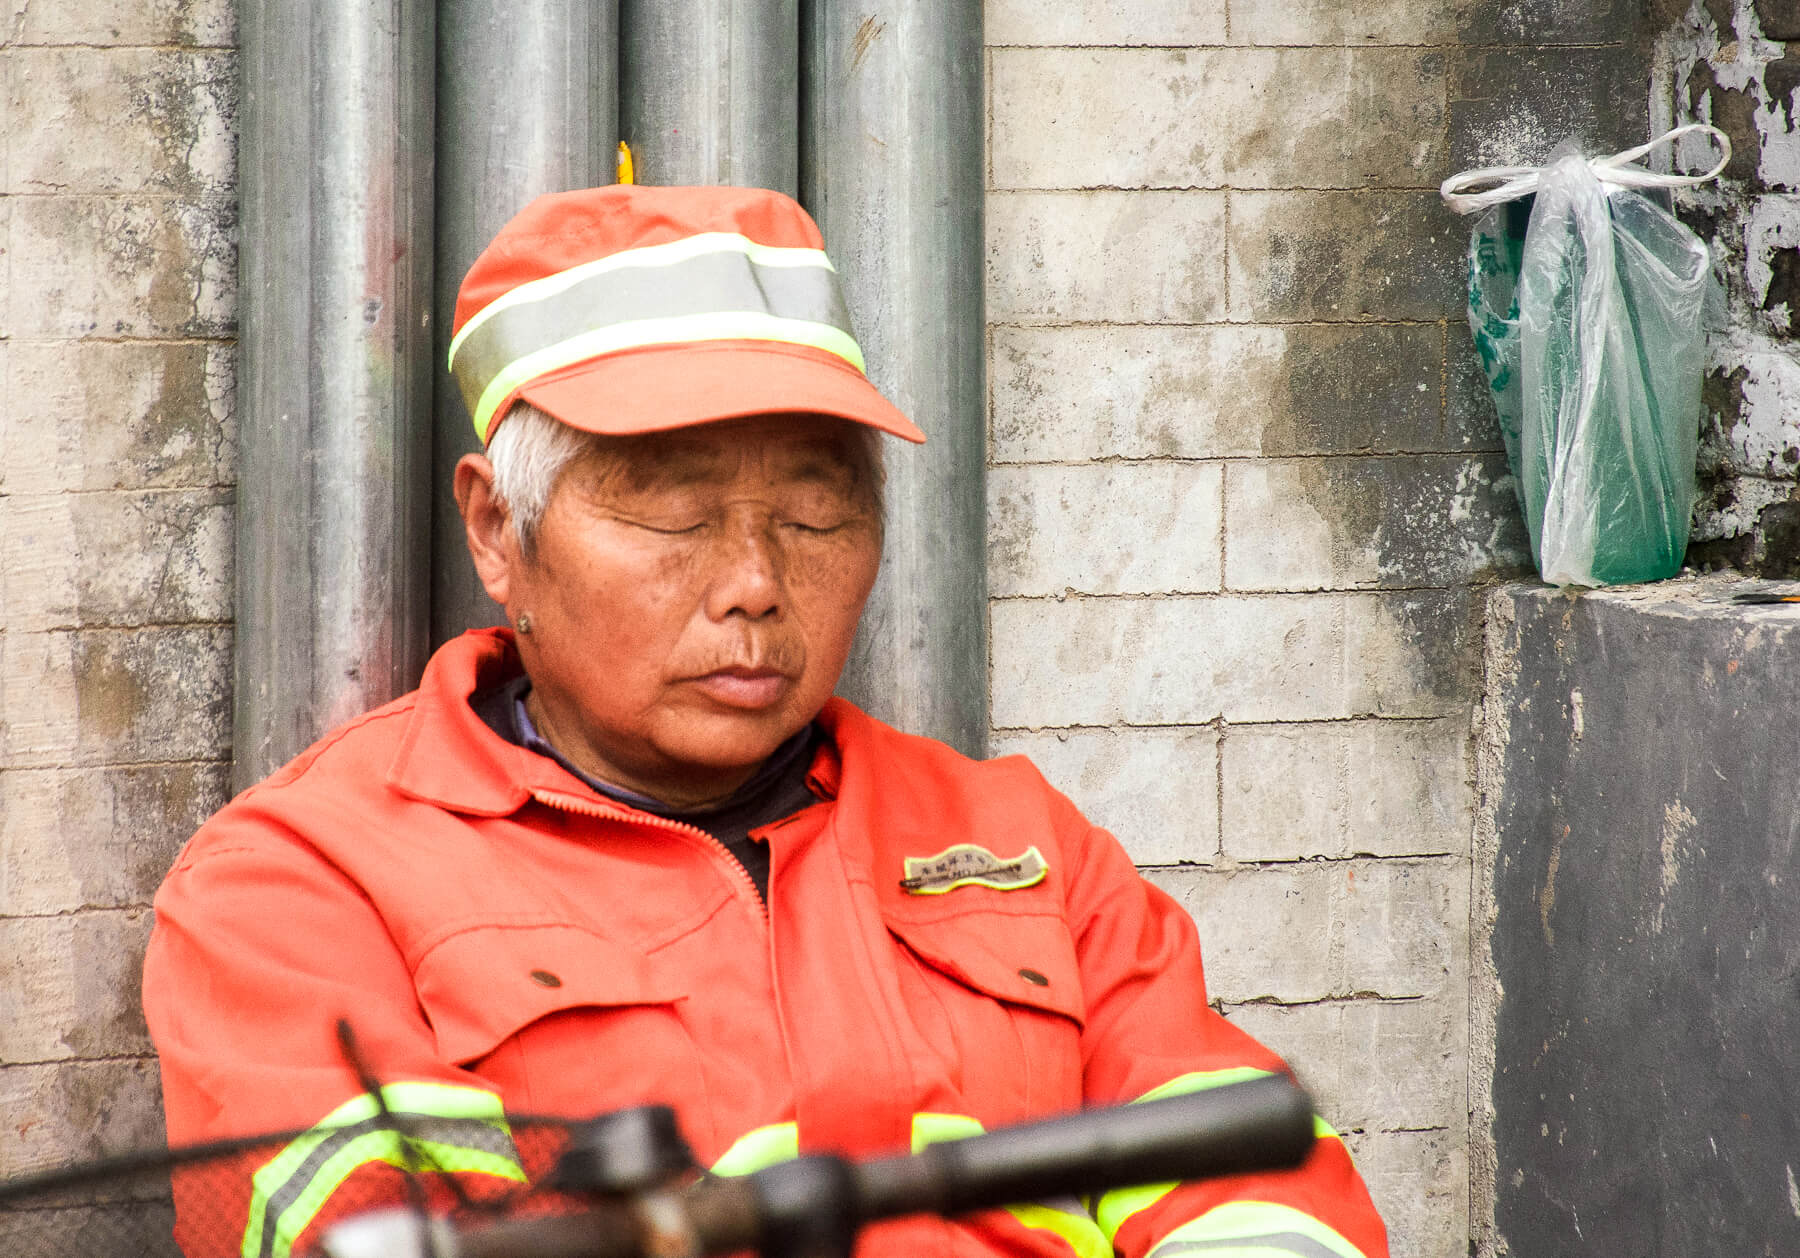 A tanned Chinese lady wearing fluorescent hi-vis gear, sleeping against a wall in Hutong, Beijing